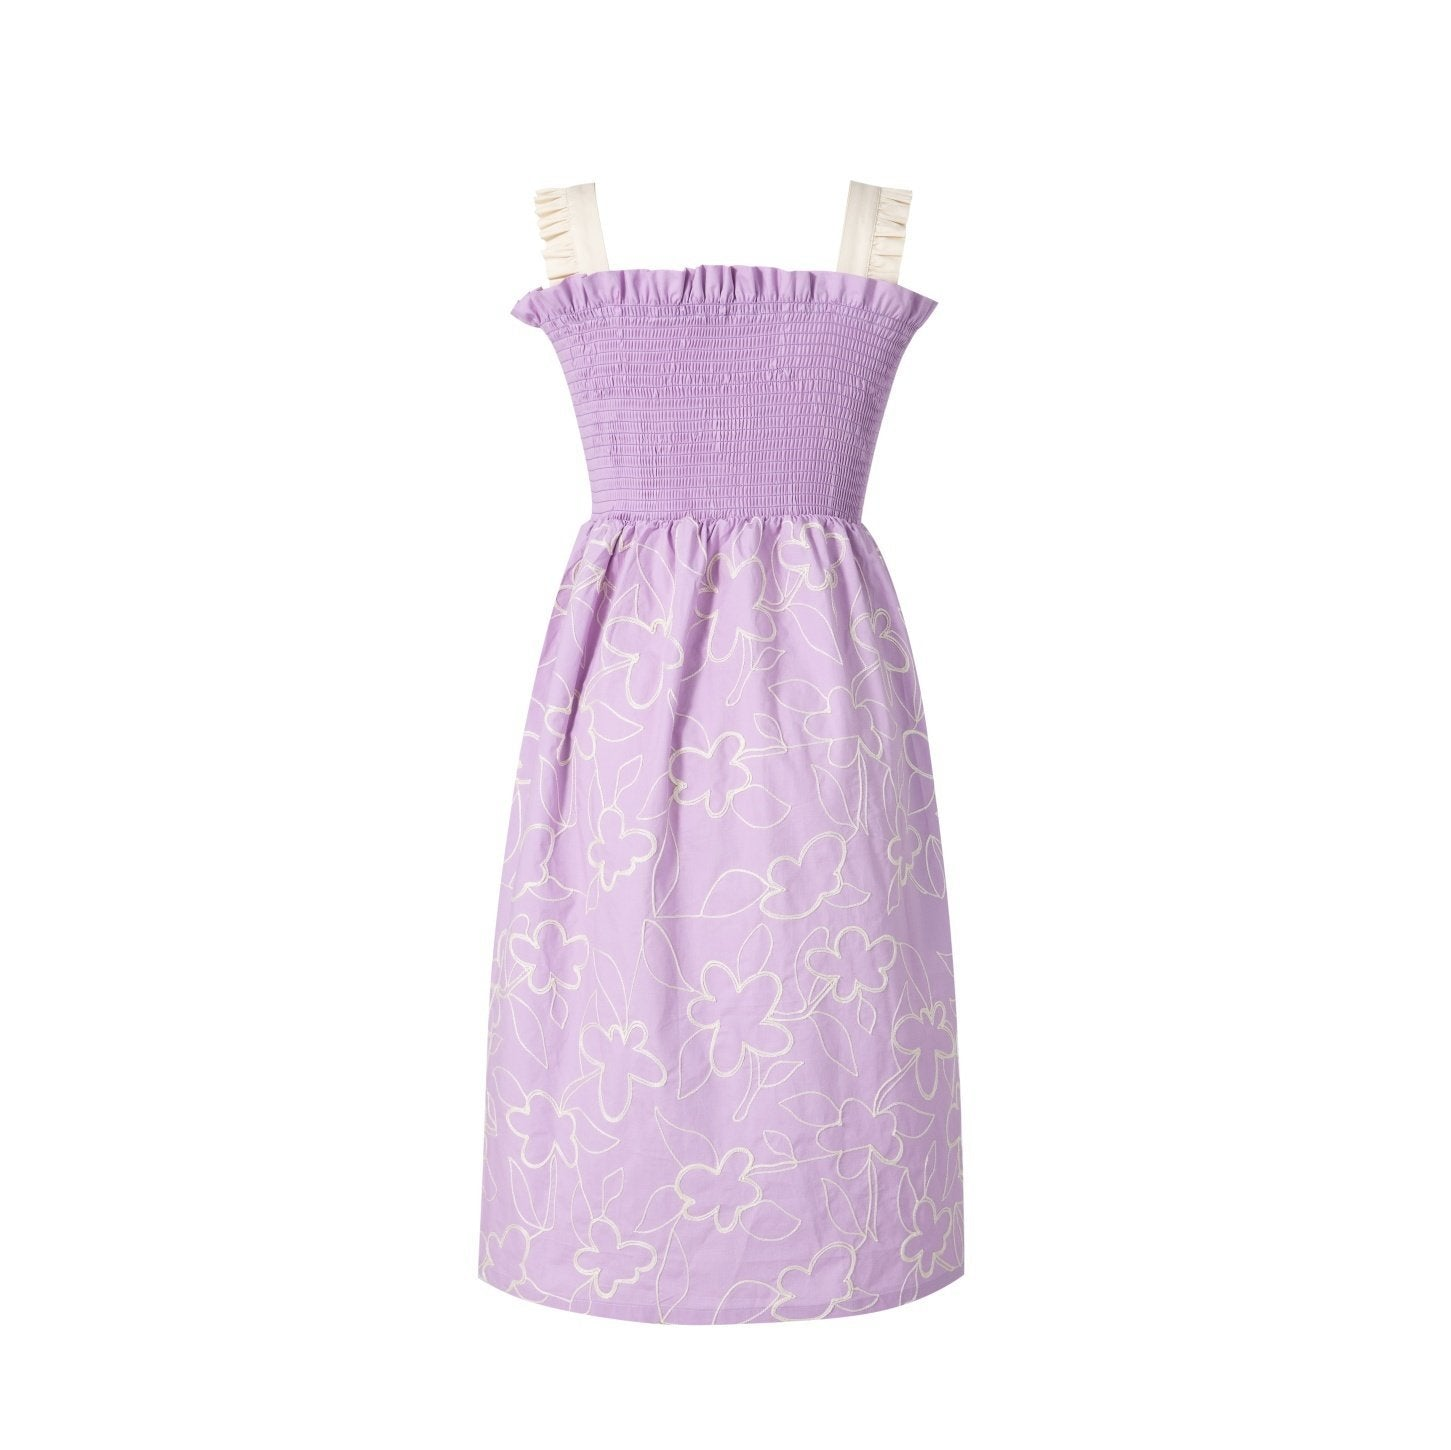 VIAS HERLIAN Pink Frilled Dress | MADA IN CHINA